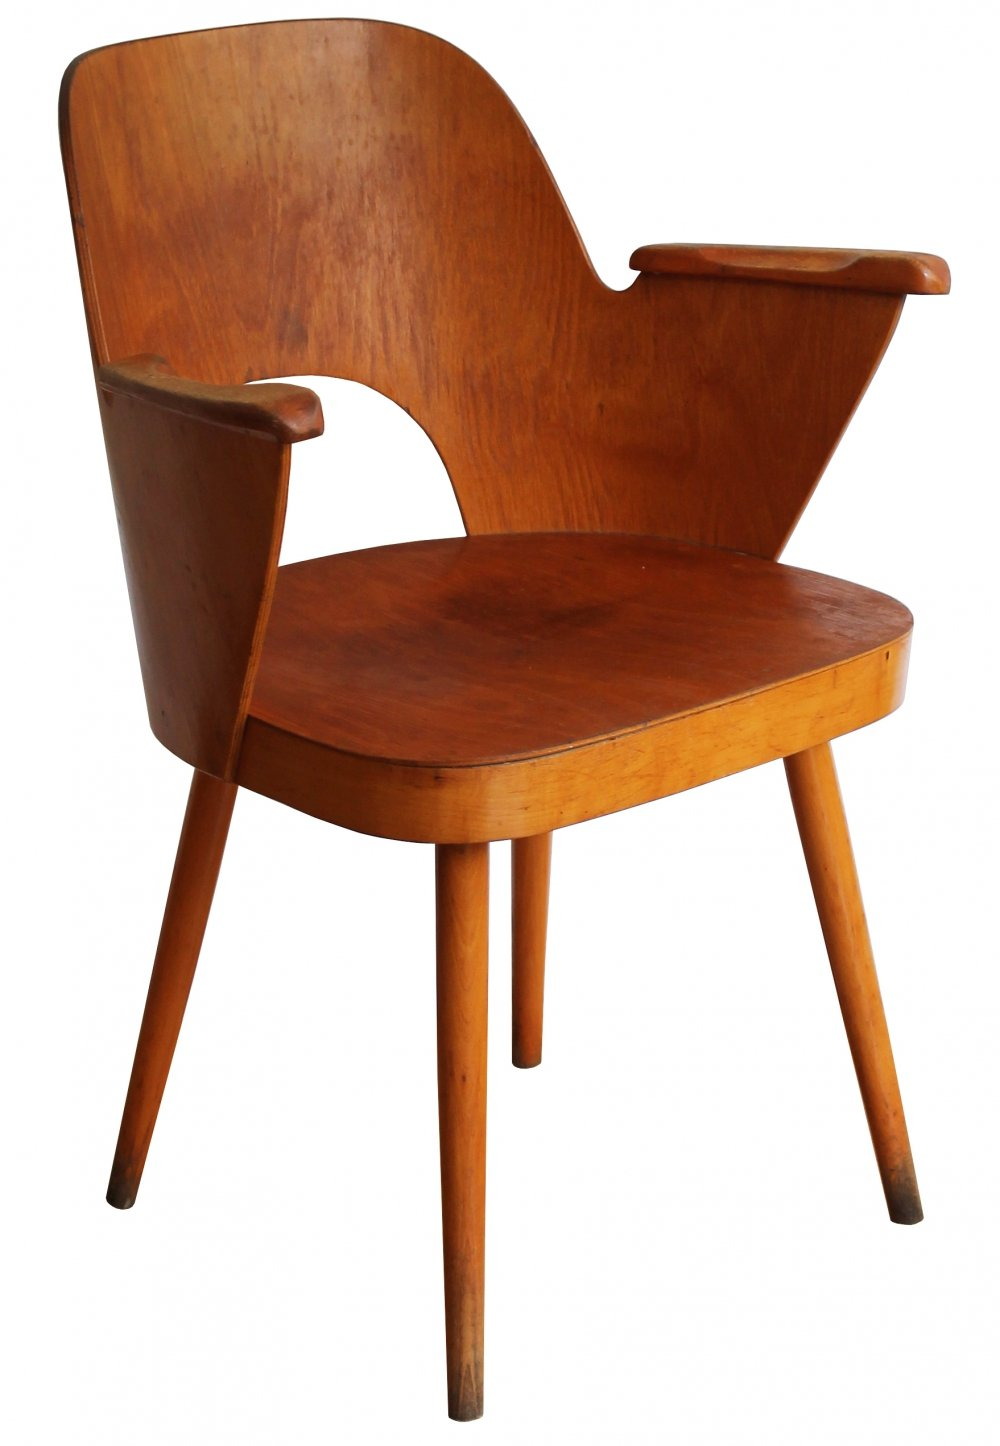 Mid Century Dining chair n.1515 by Oswald Haerdtl for TON Company